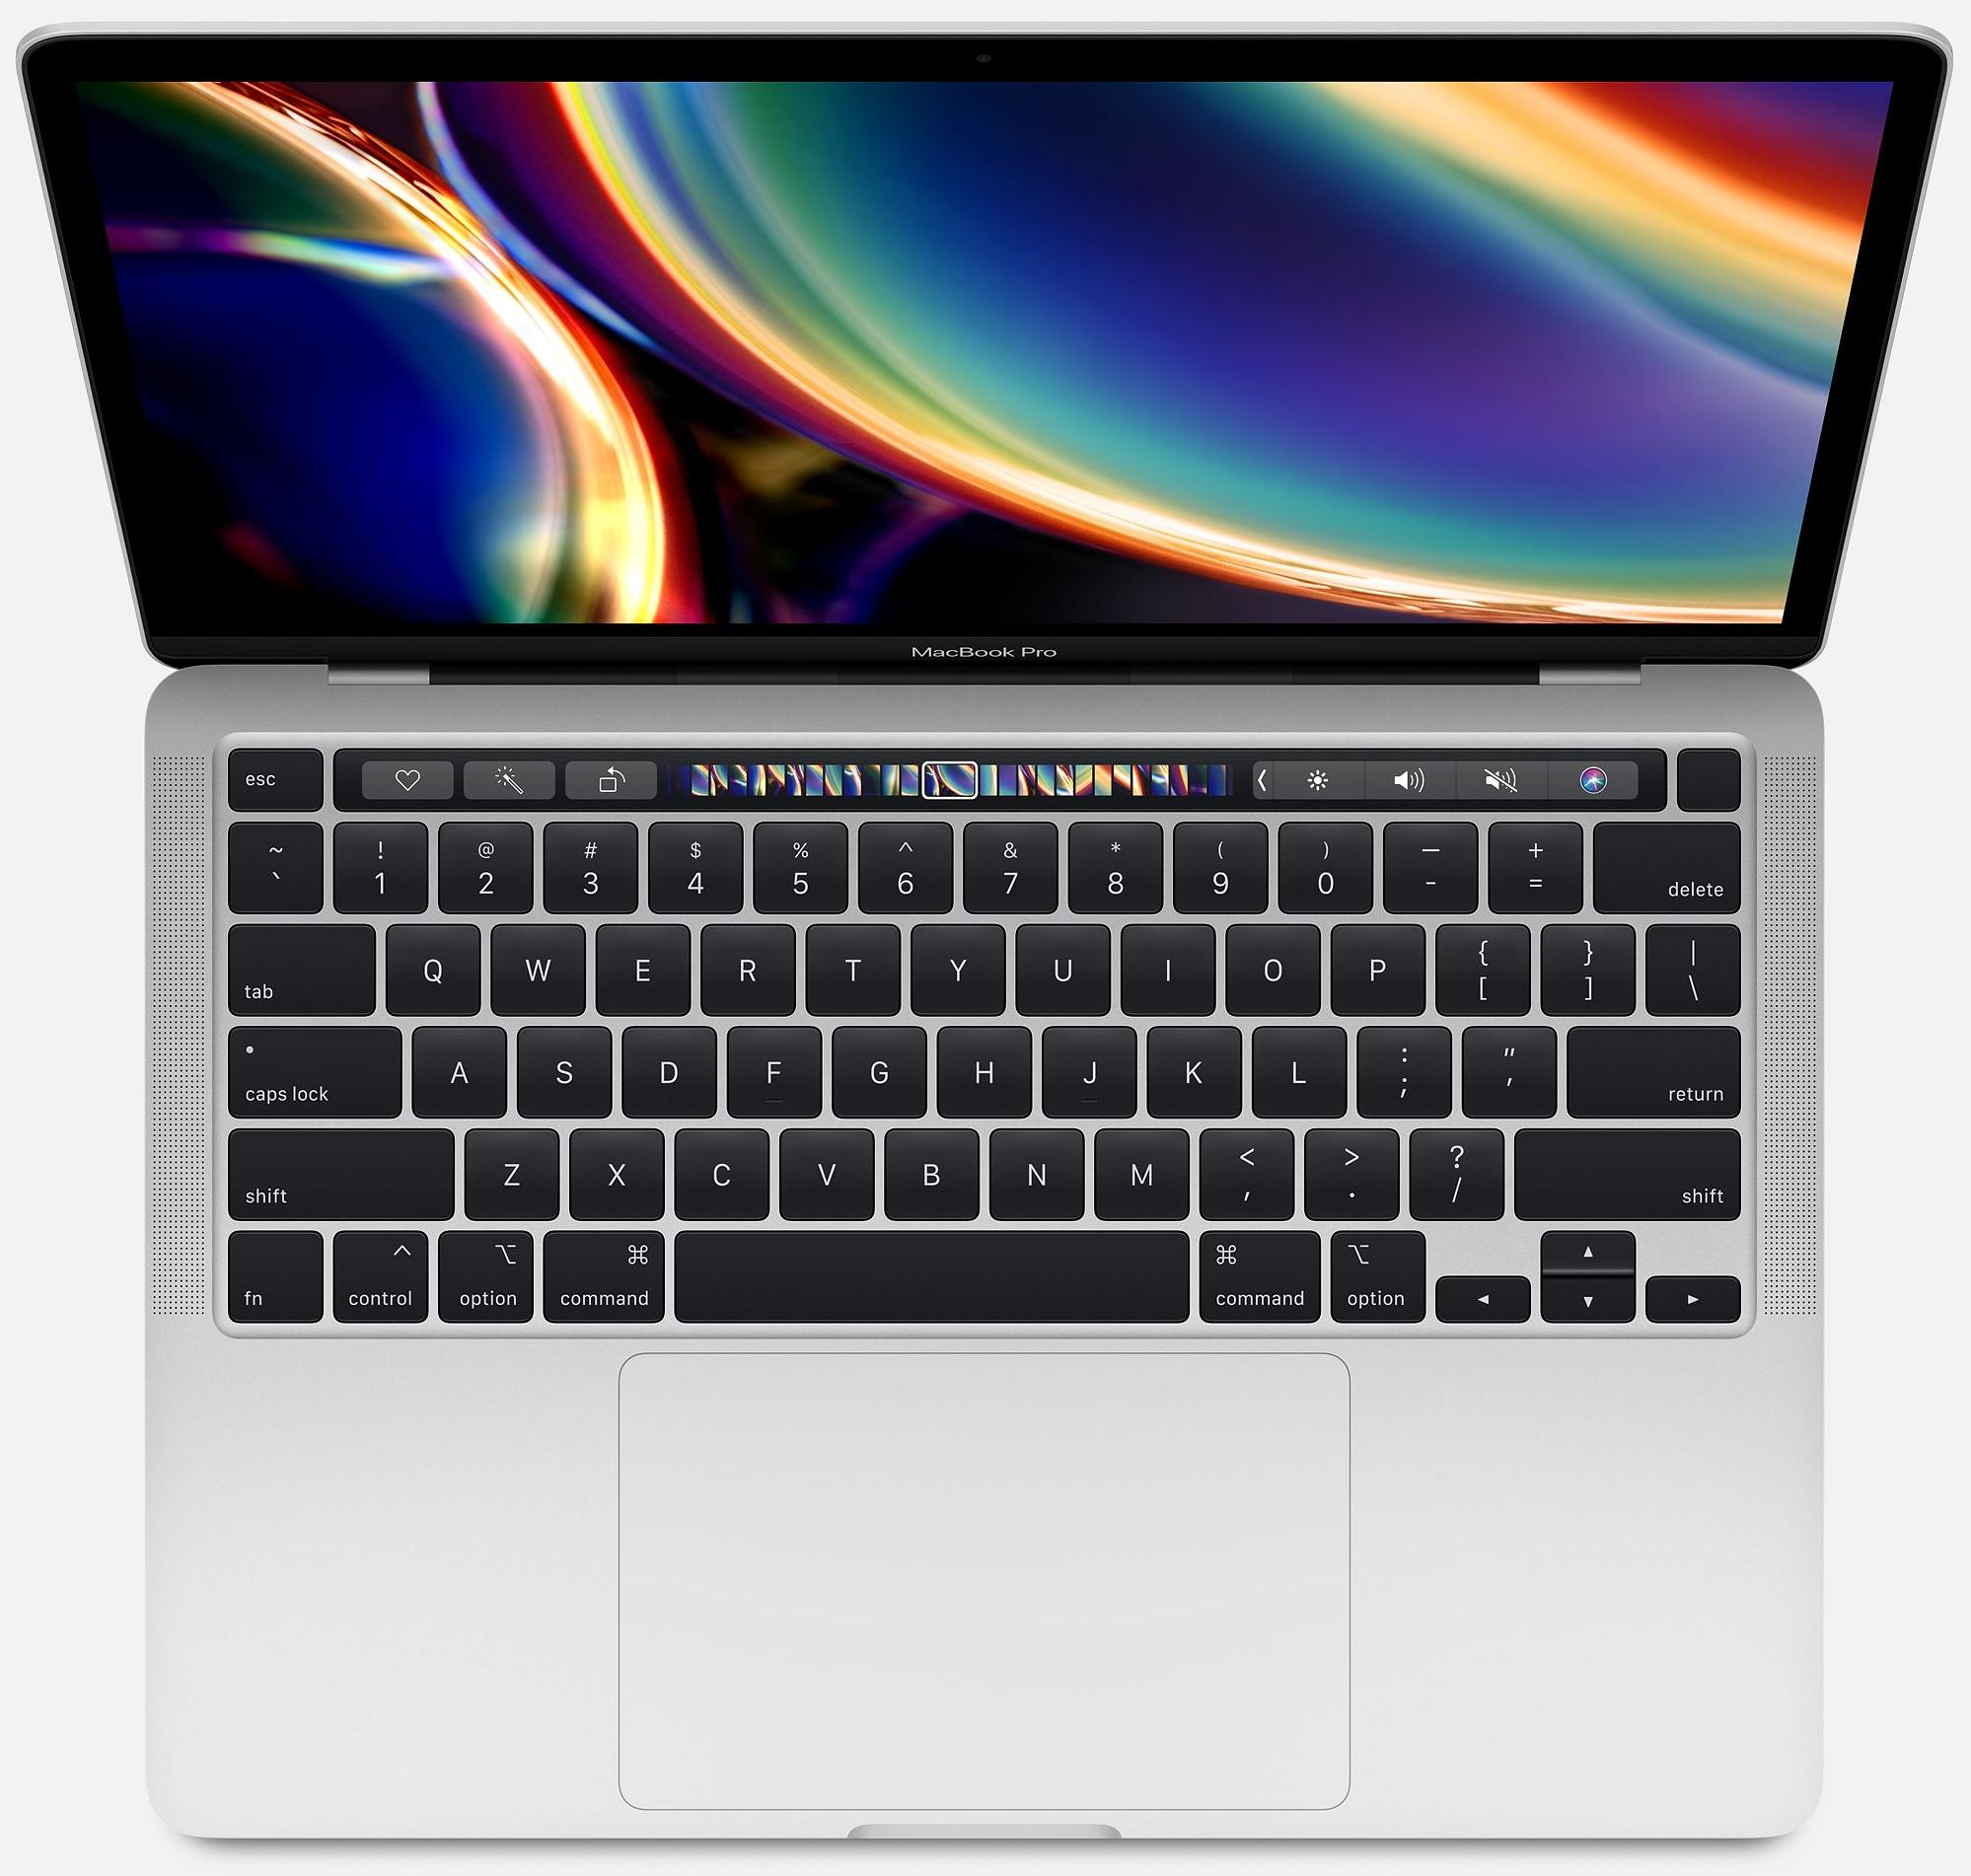 NEW Apple Macbook Pro 13 Inch Laptop 2020 Model (1.4GHz quad‑core 8th‑generation Intel Core i5, 8GB, 512GB SSD) - iStock BD